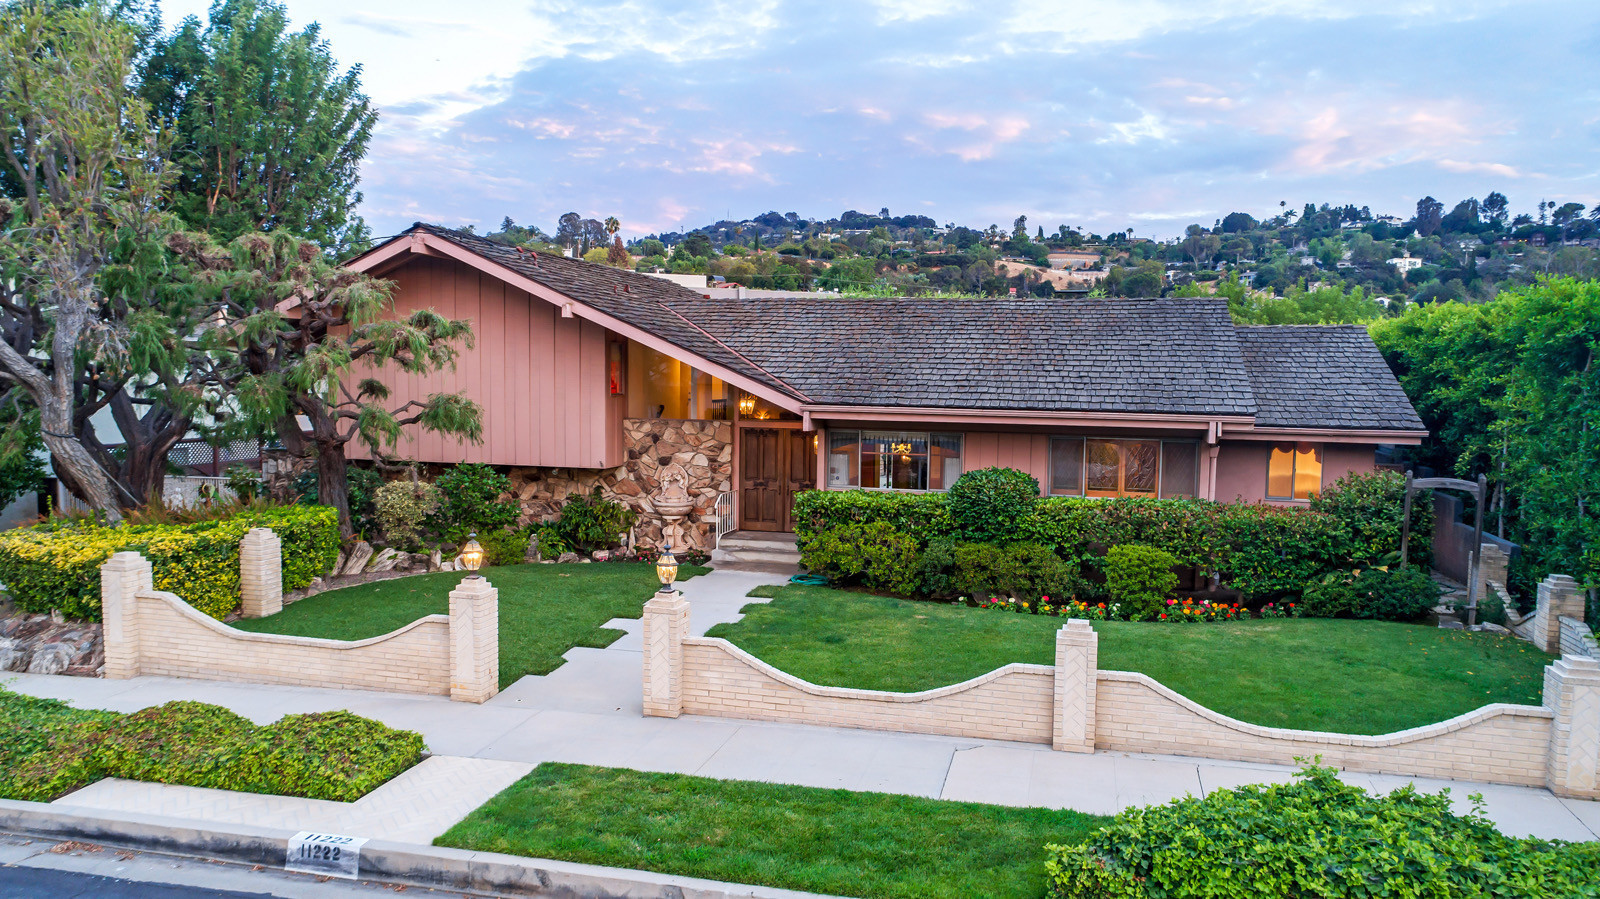 HGTV outbid Lance Bass for 'Brady Bunch' house, and the 'N ...